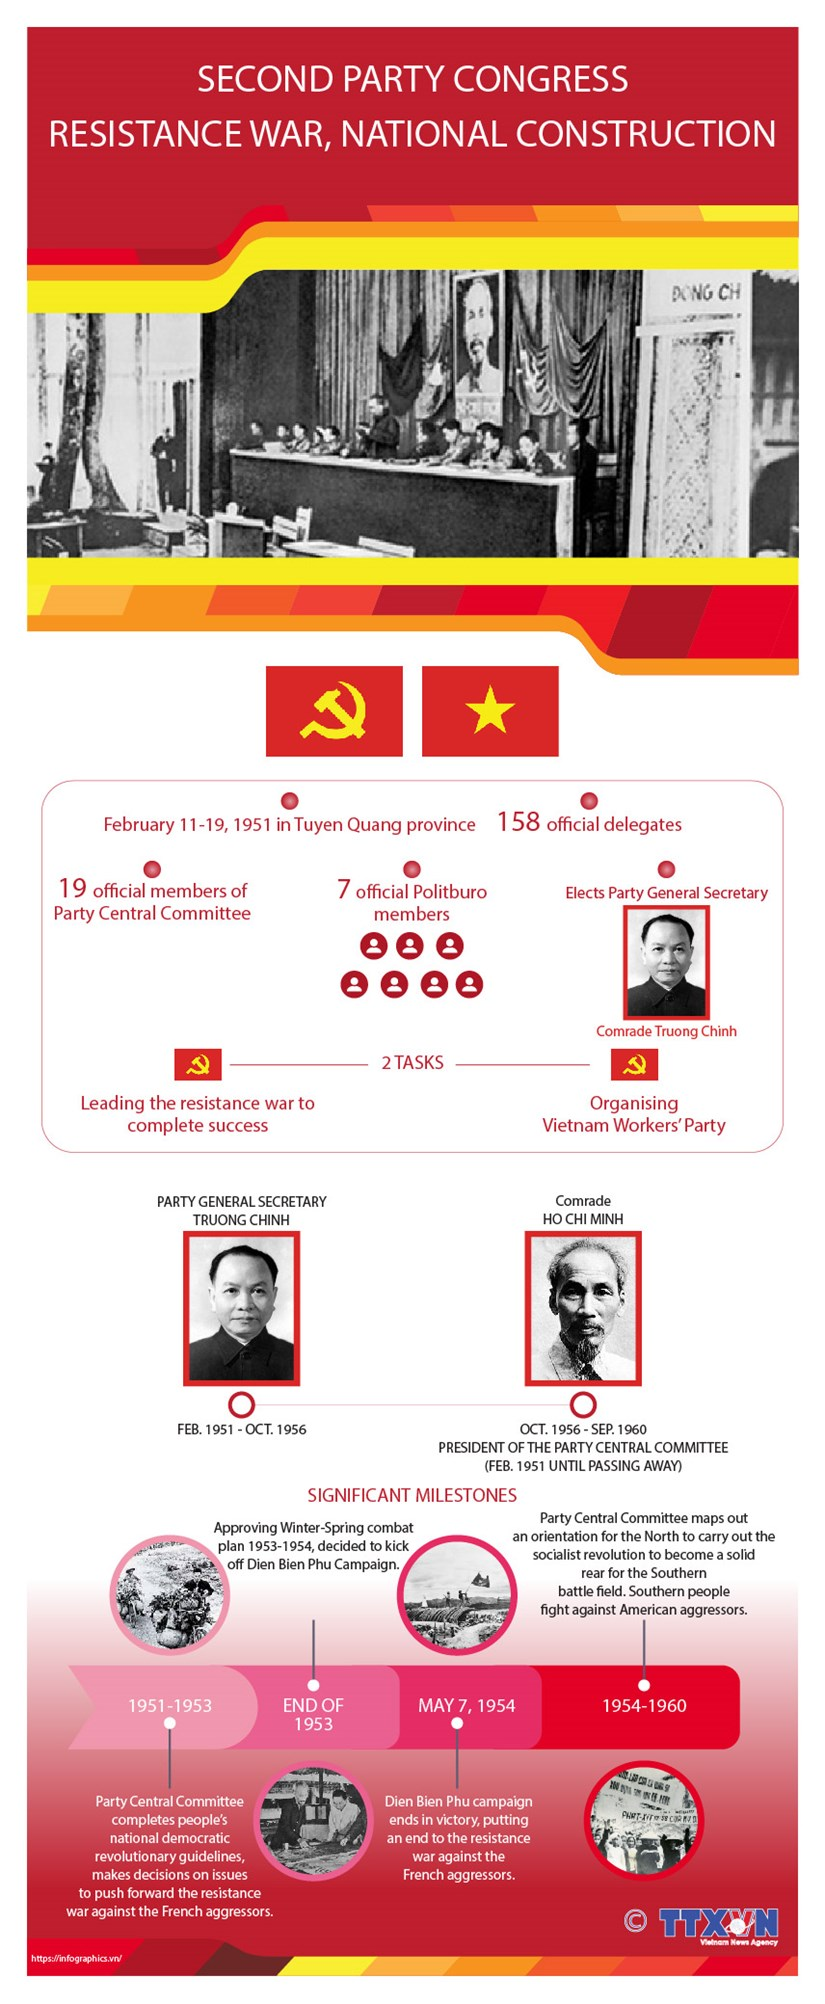 Second Party Congress leads nation in resistance, national construction hinh anh 1